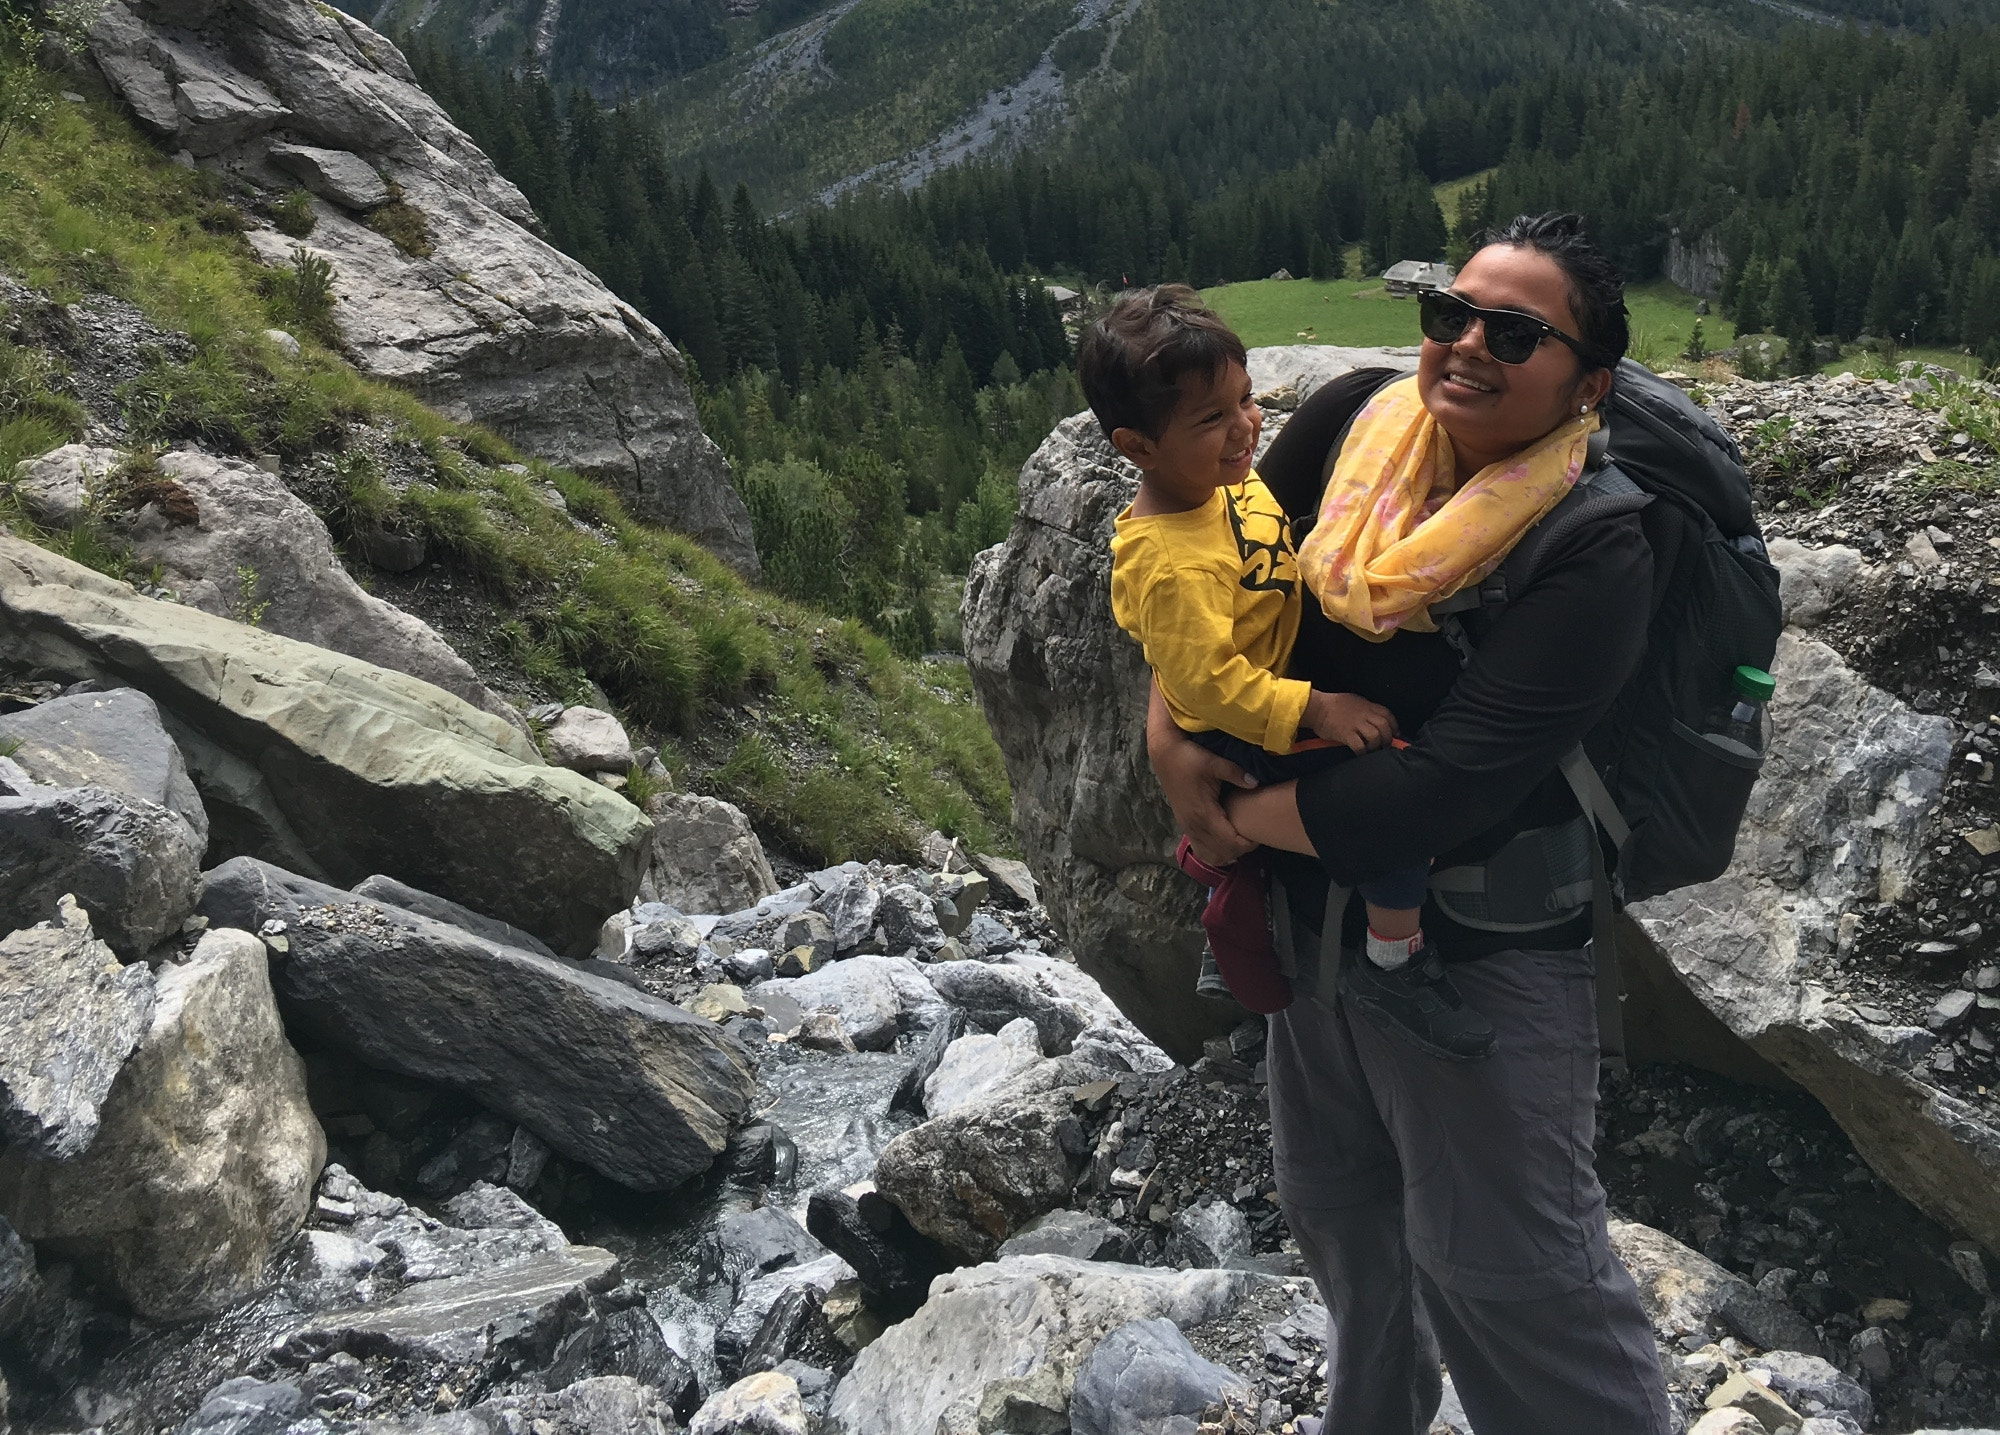 Samai and her travelling toddler hiking in Switzerland